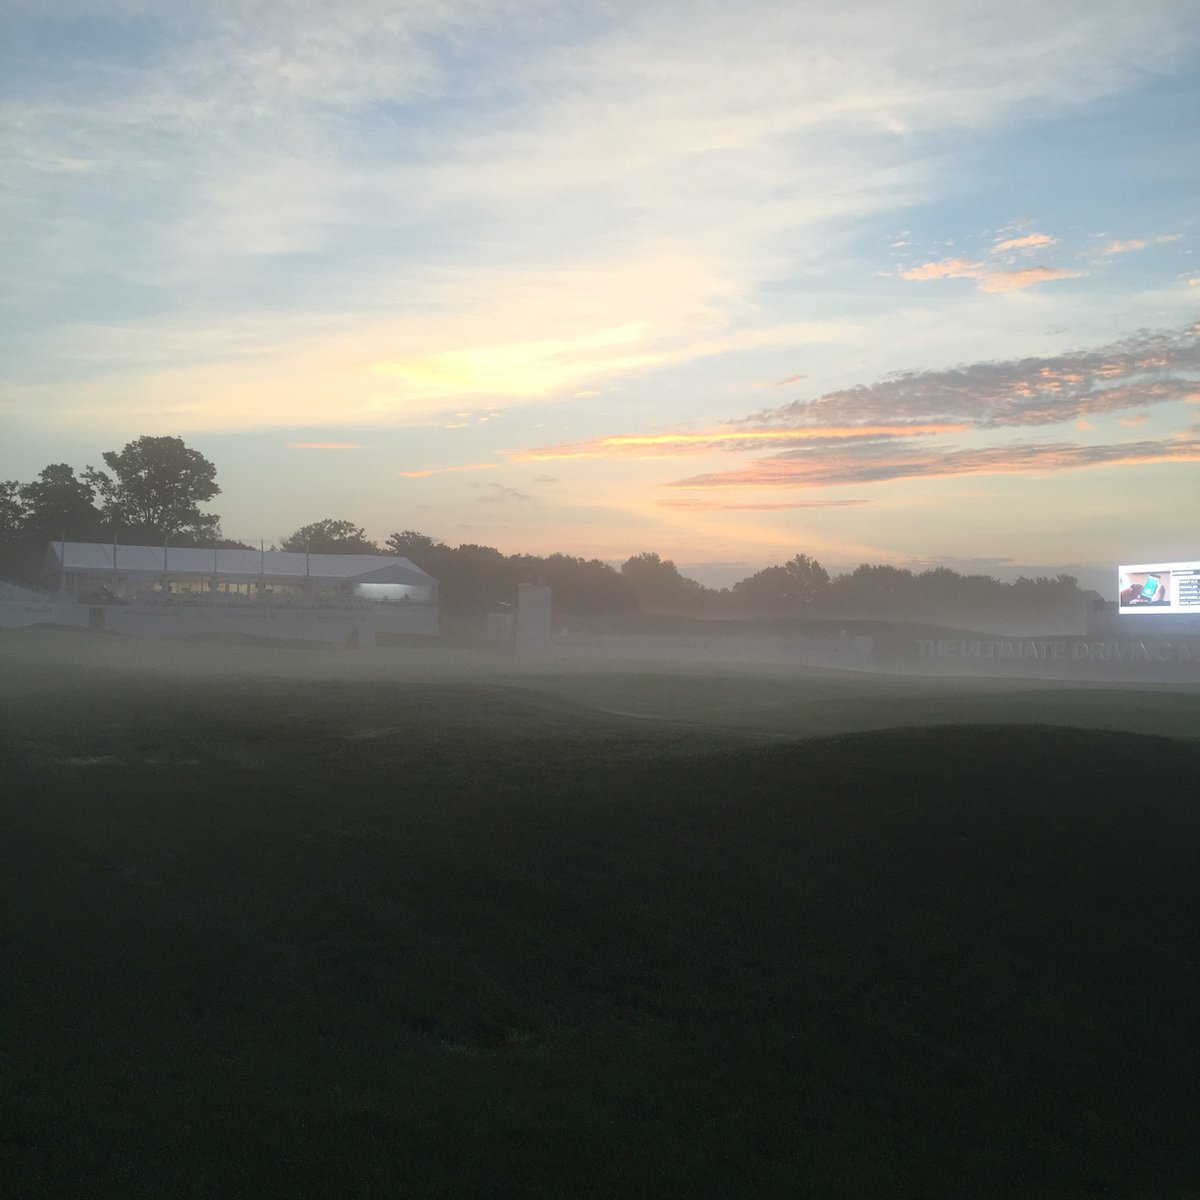 Sunrise at Crooked Stick. #BMWChamps https://t.co/Xd1USvSmdB